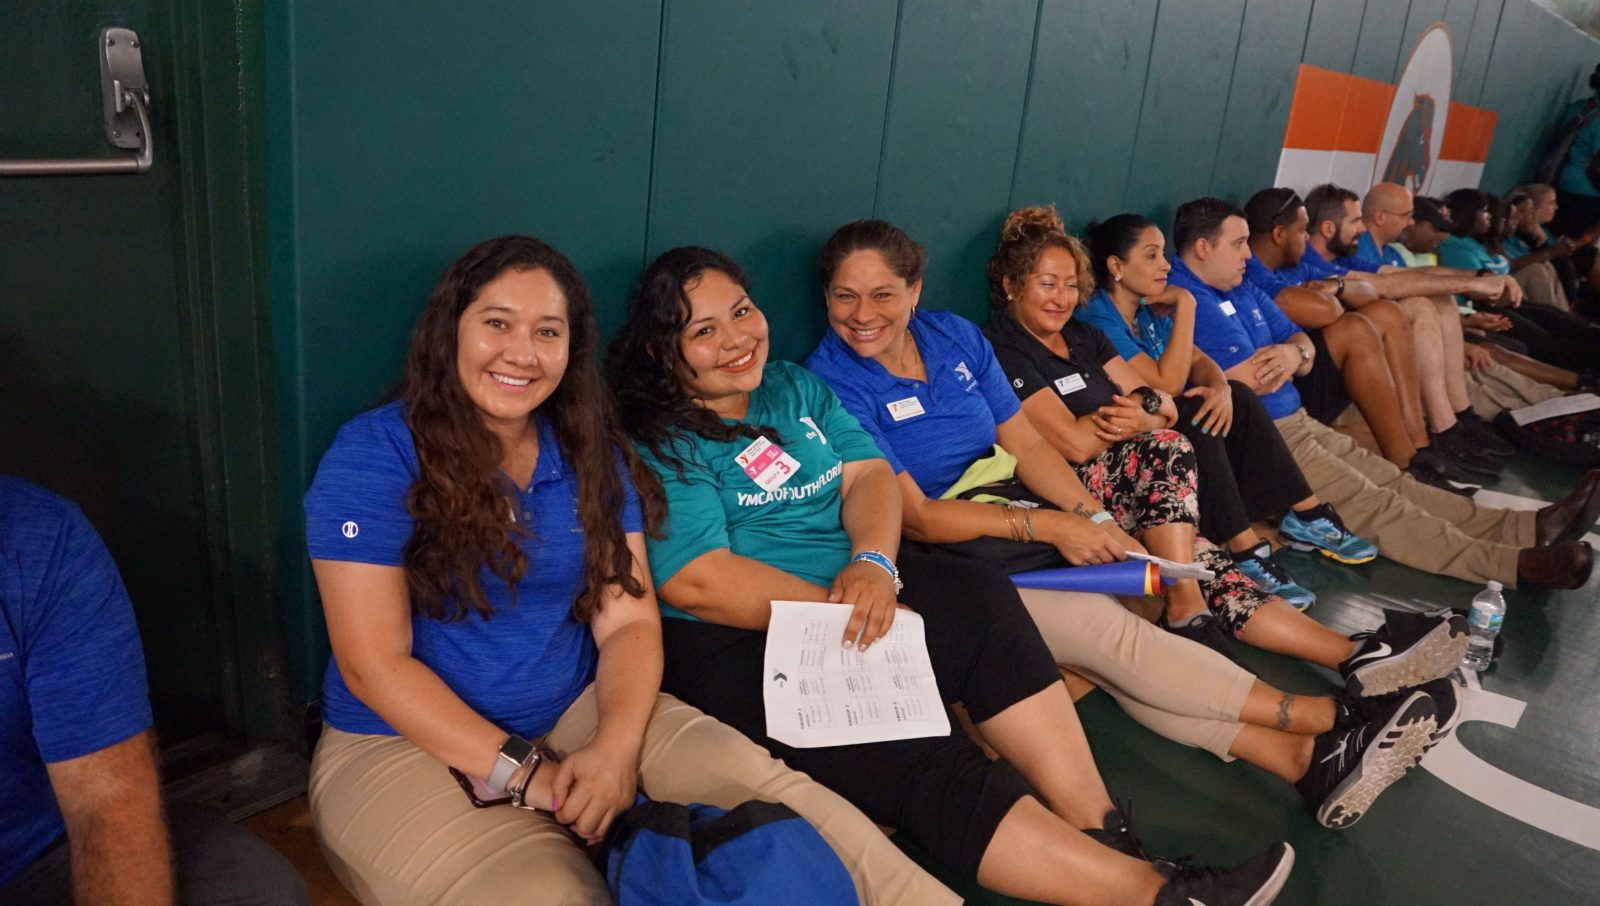 SUMMER CAMP STAFF GET TRAINED & READY